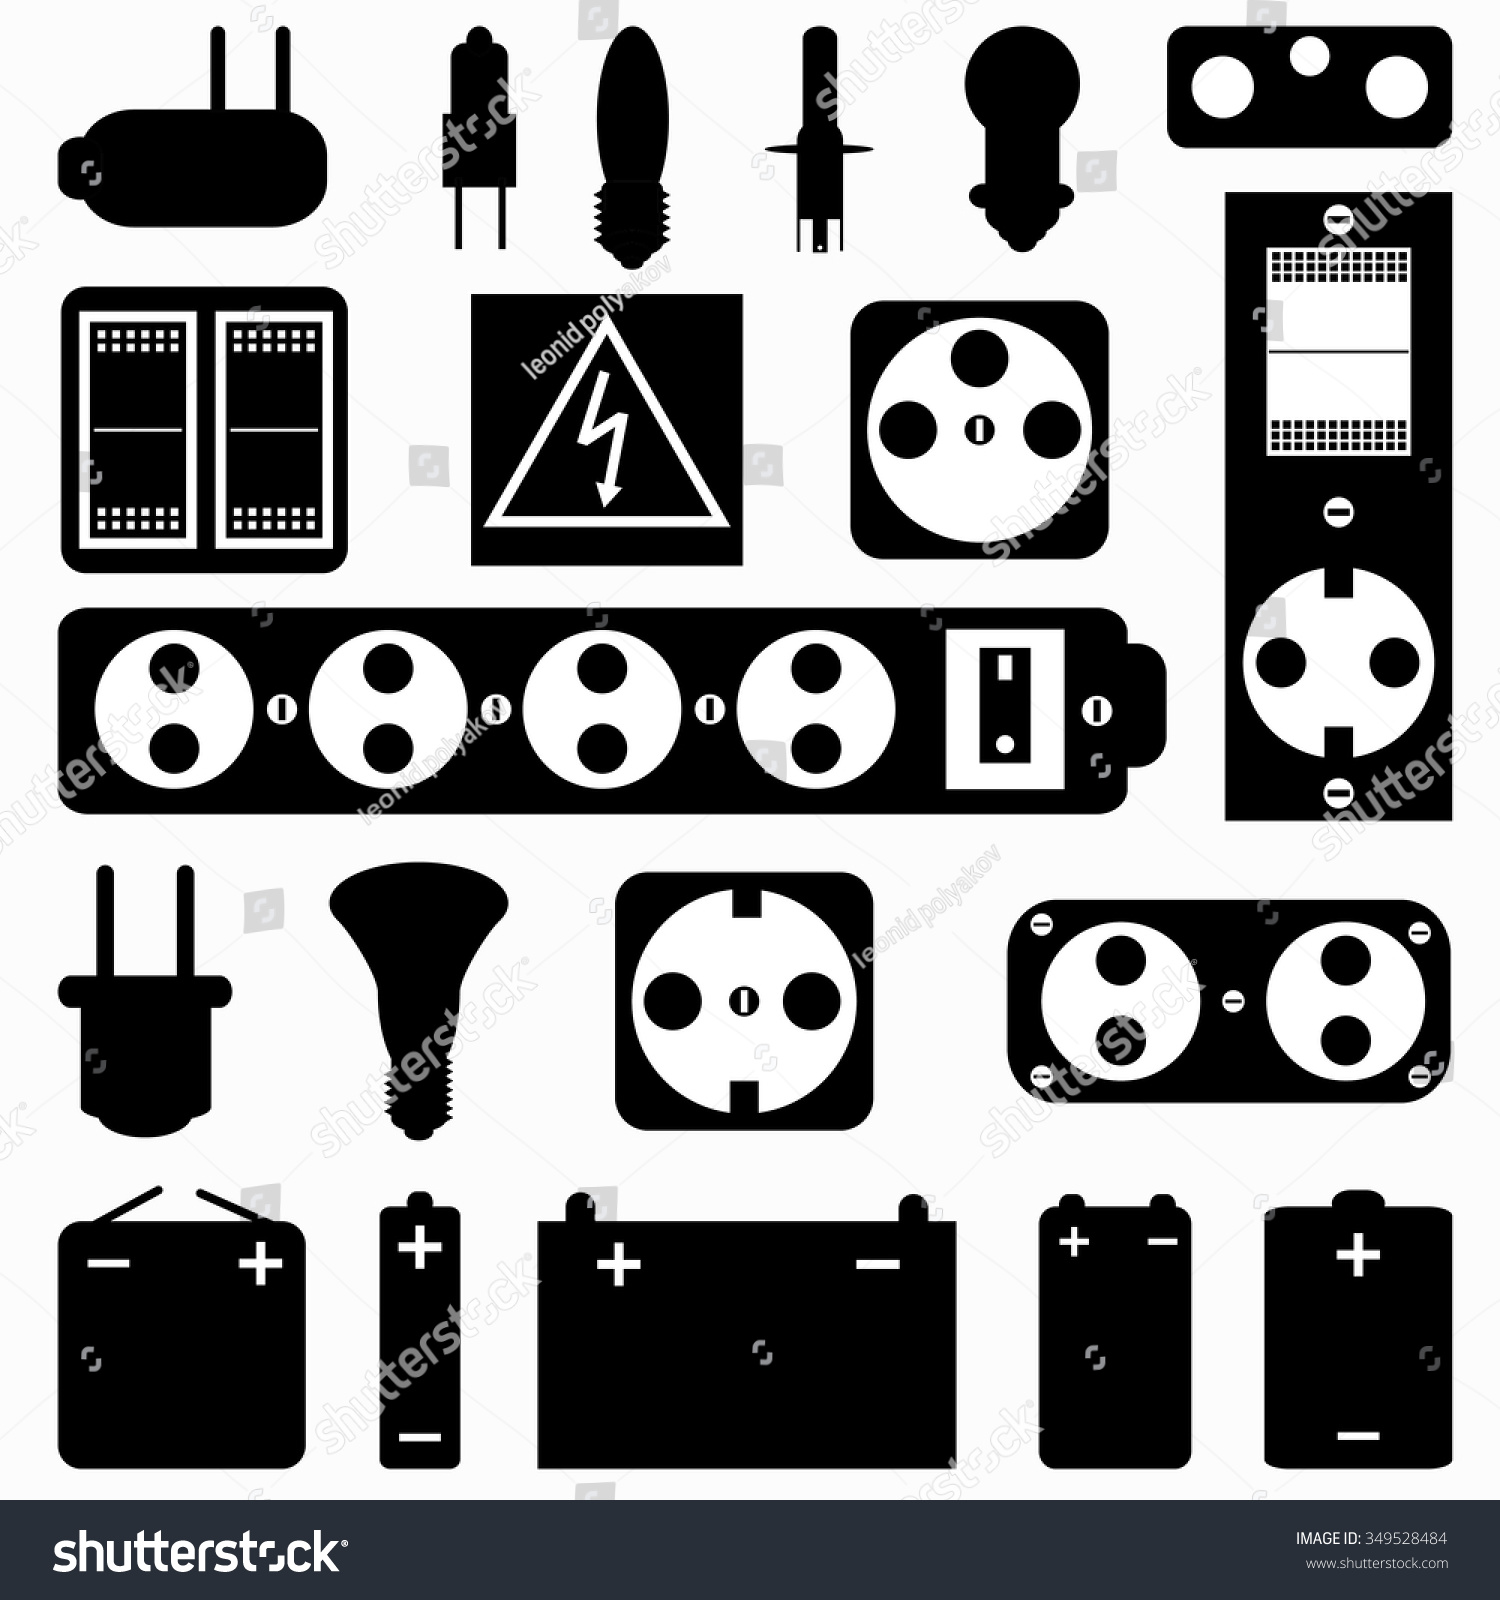 Electrical equipment monochrome collection symbols stock vector electrical equipment monochrome collection of symbols buycottarizona Choice Image